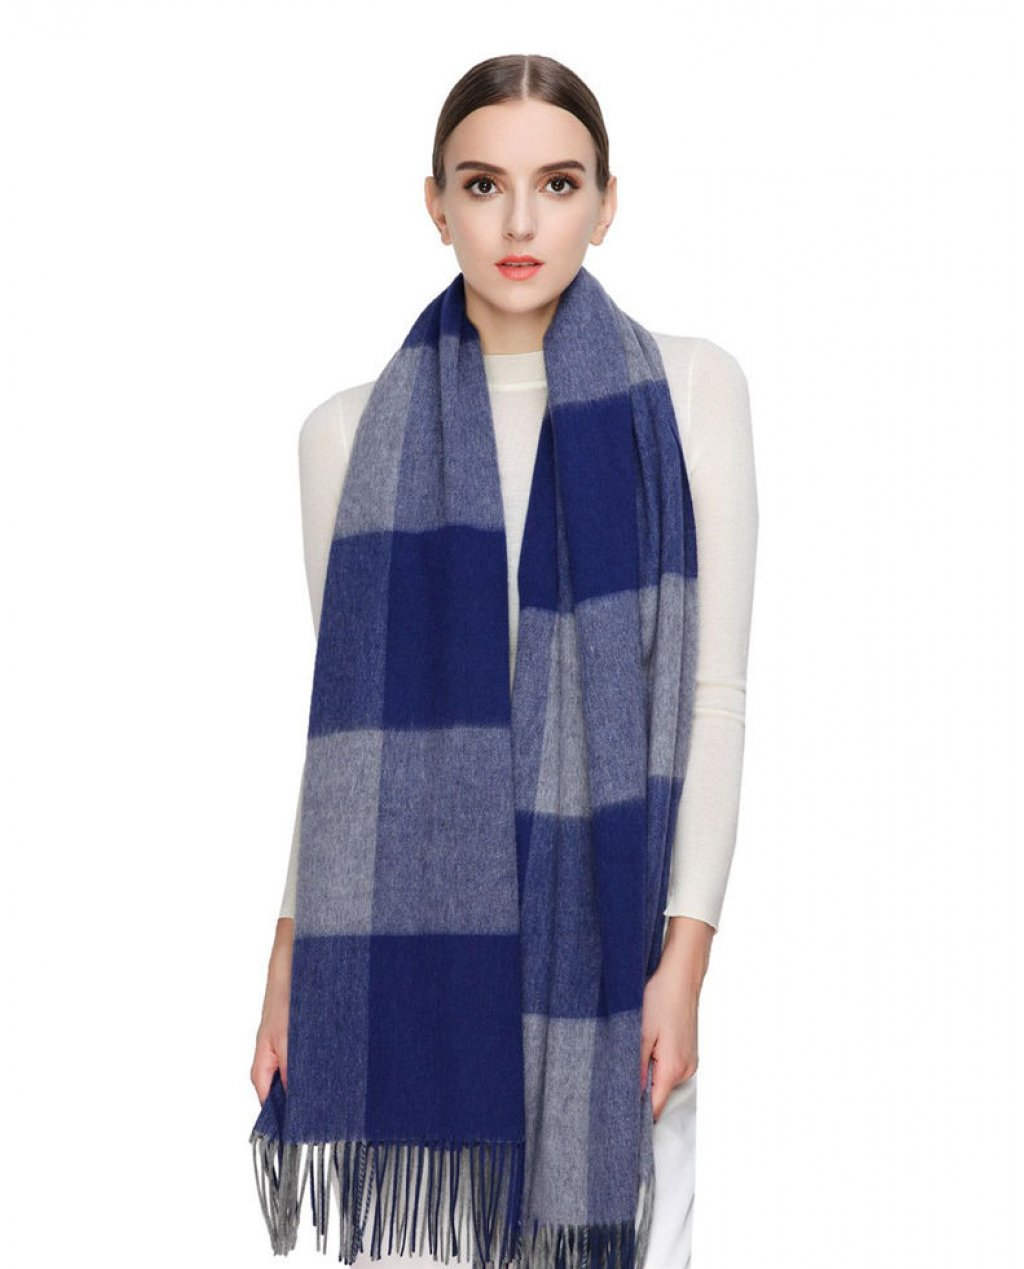 Faurn Womens 100% Pure Cashmere Scarves Shawls Wraps Blue Grey Plaids